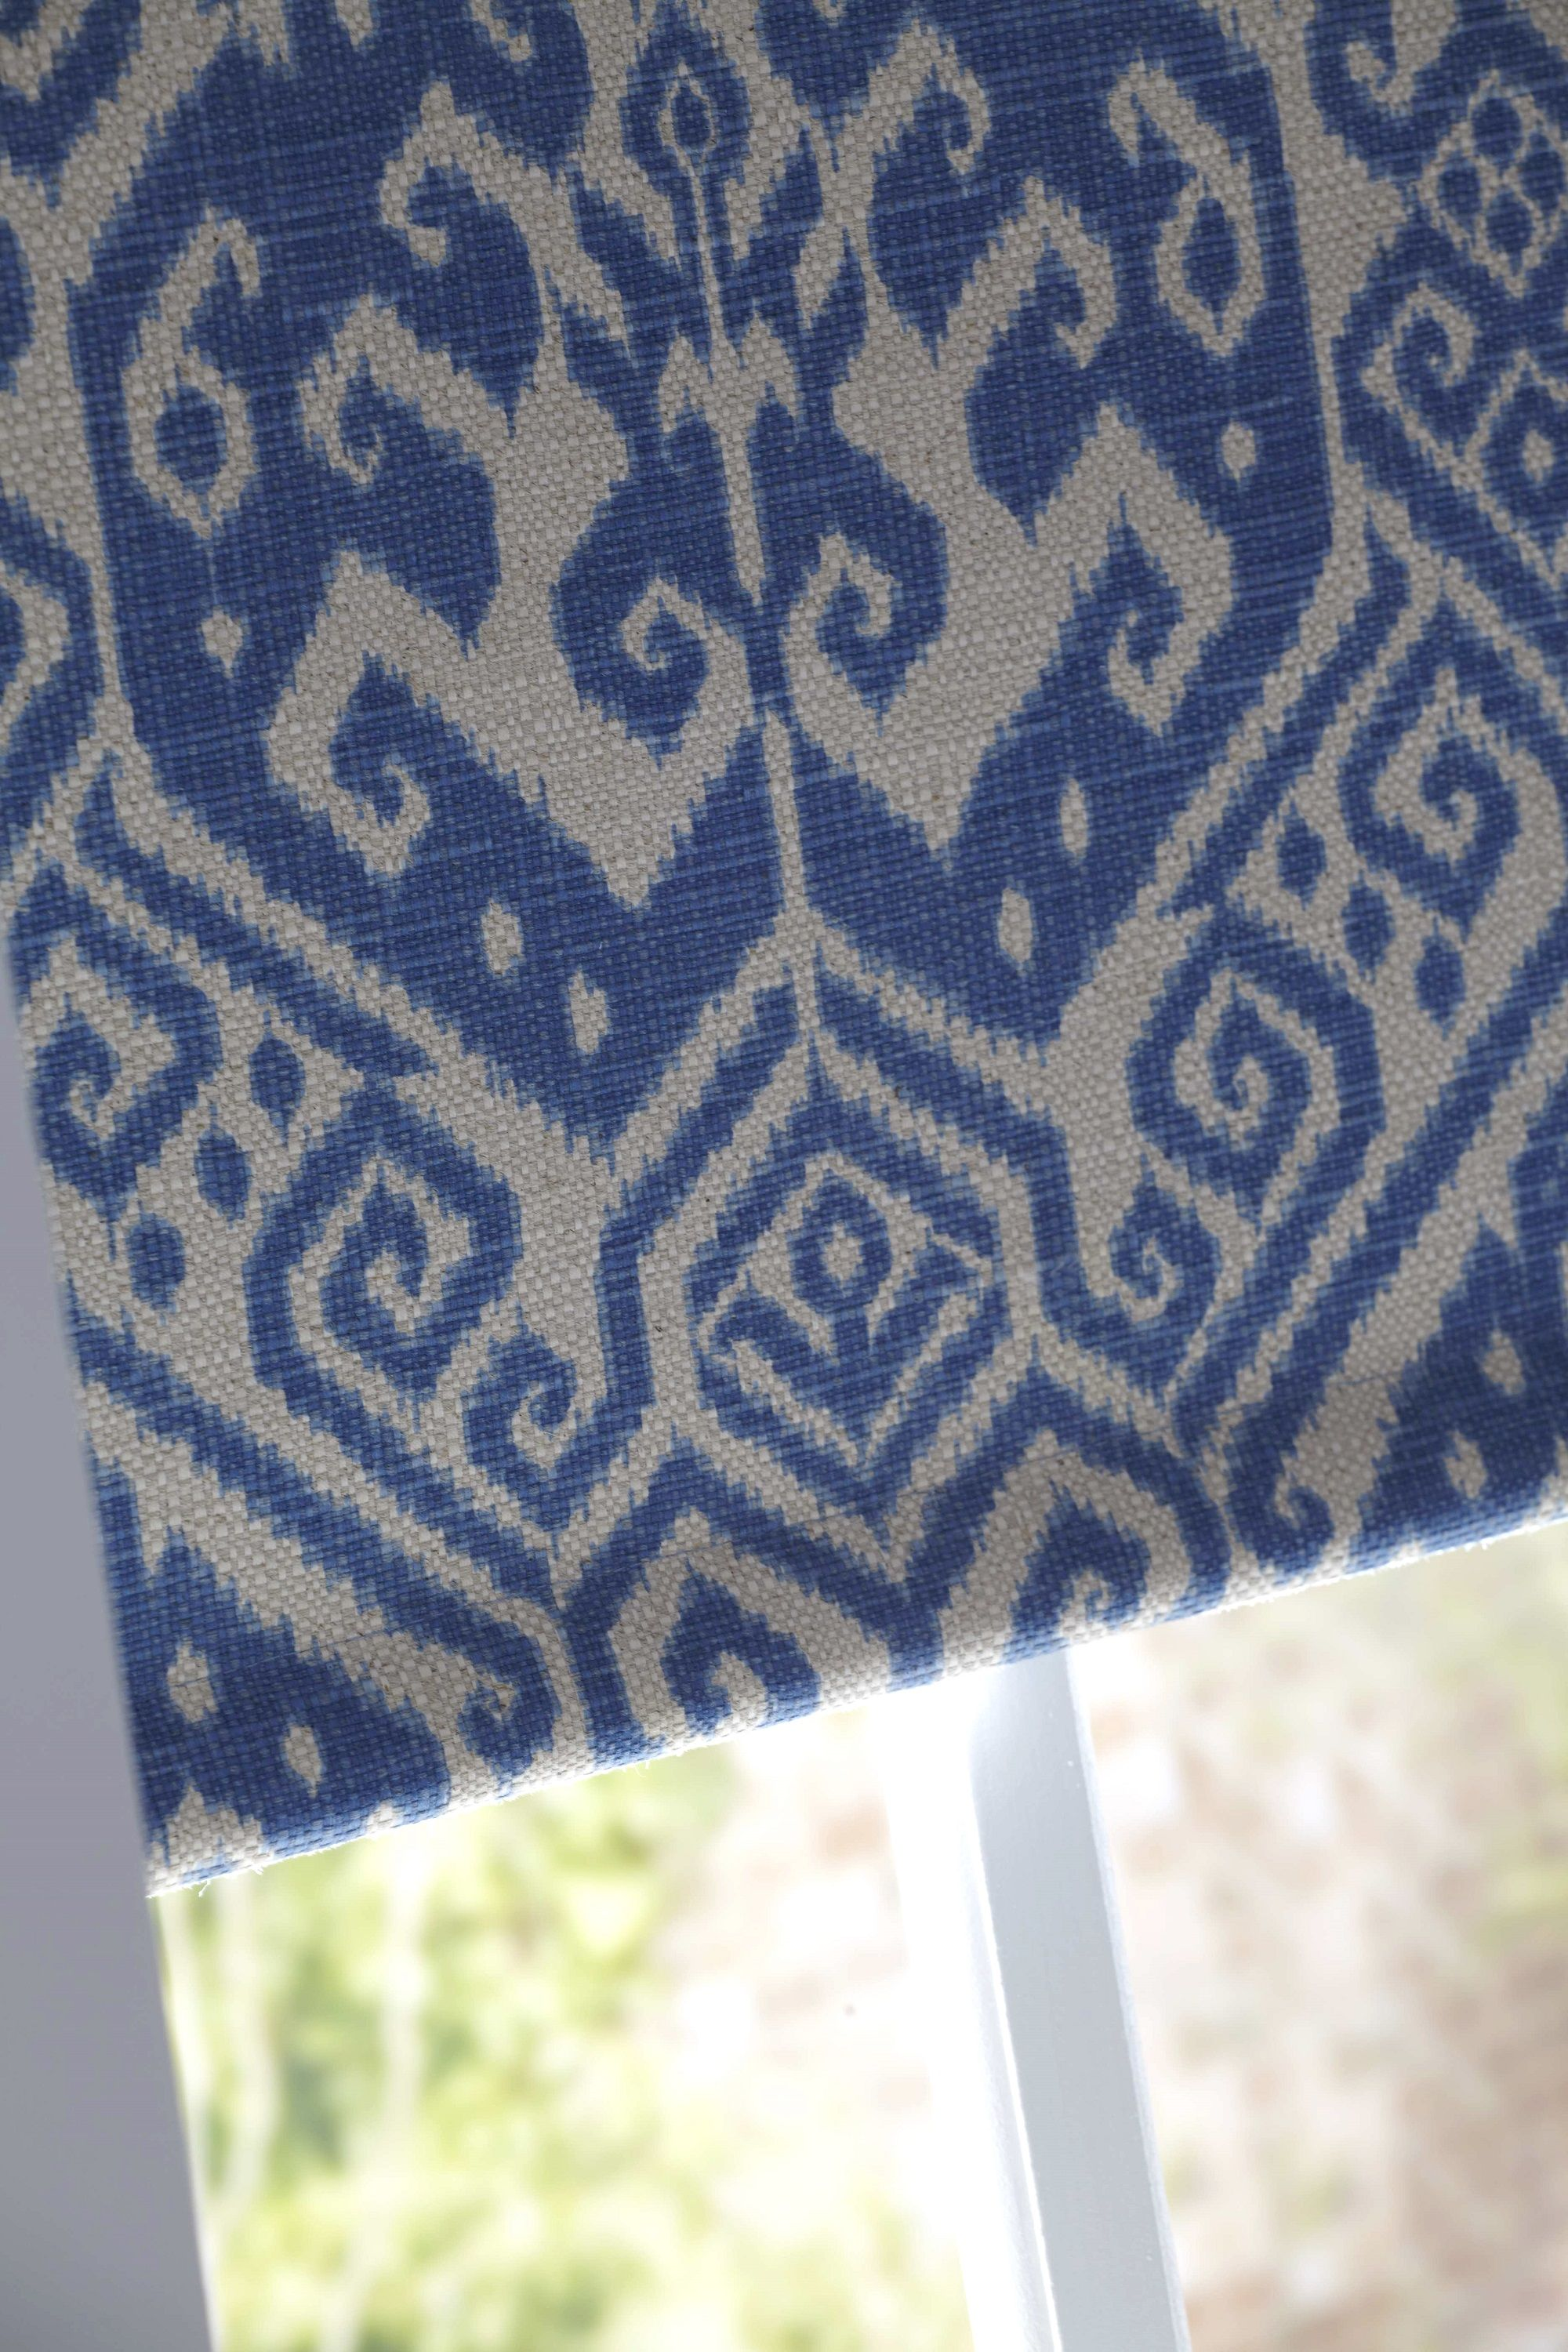 Blue Ikat Boho Bedroom Roller Blind With Fabric From John